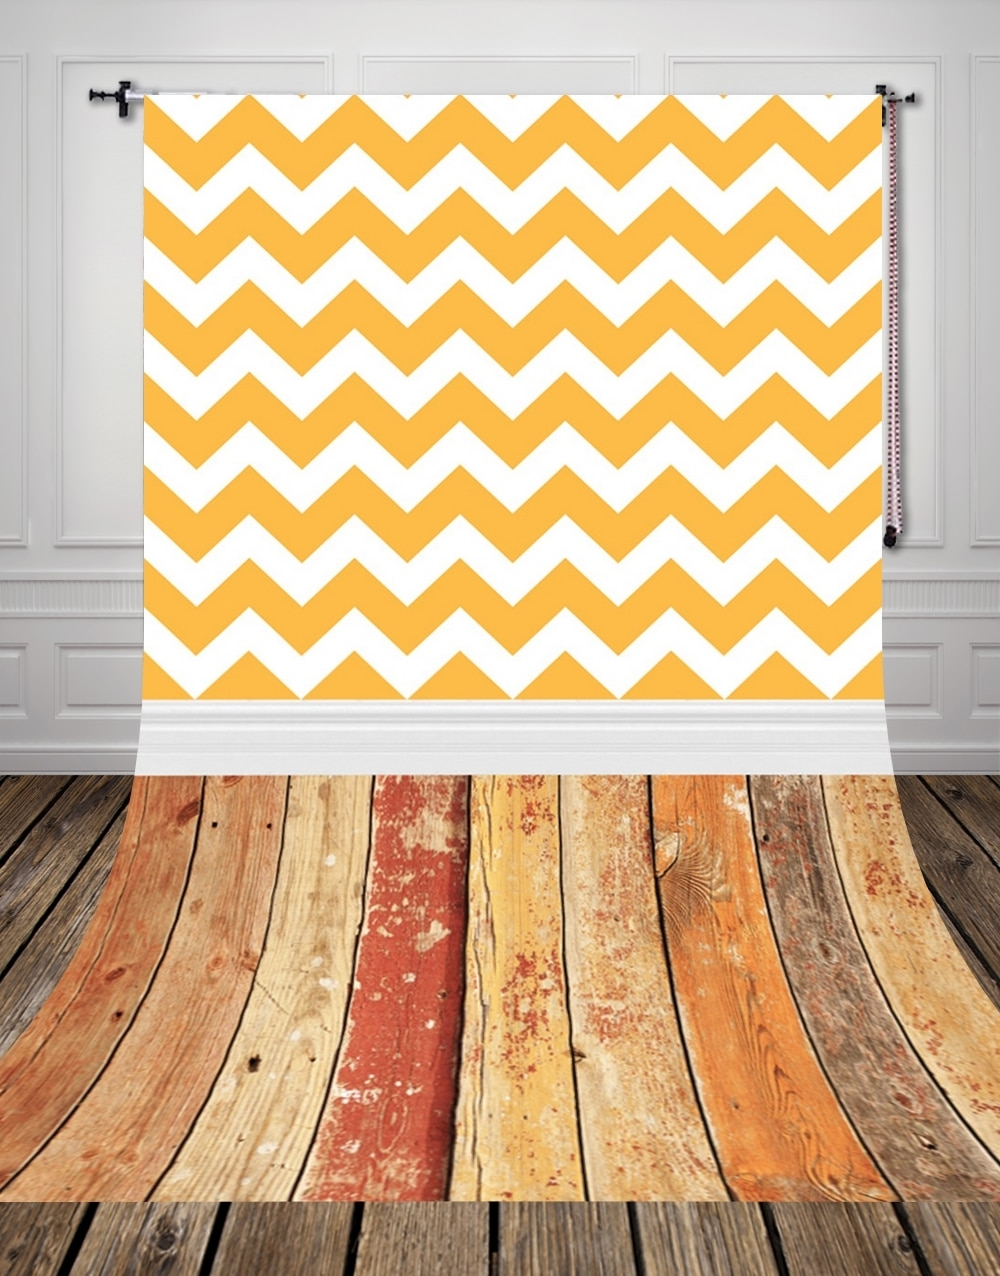 Popular Chevron Wall Art With Huayi Vintage Wood Floor Backdrop Vintage Yellow Chevron Wall Art (View 14 of 15)